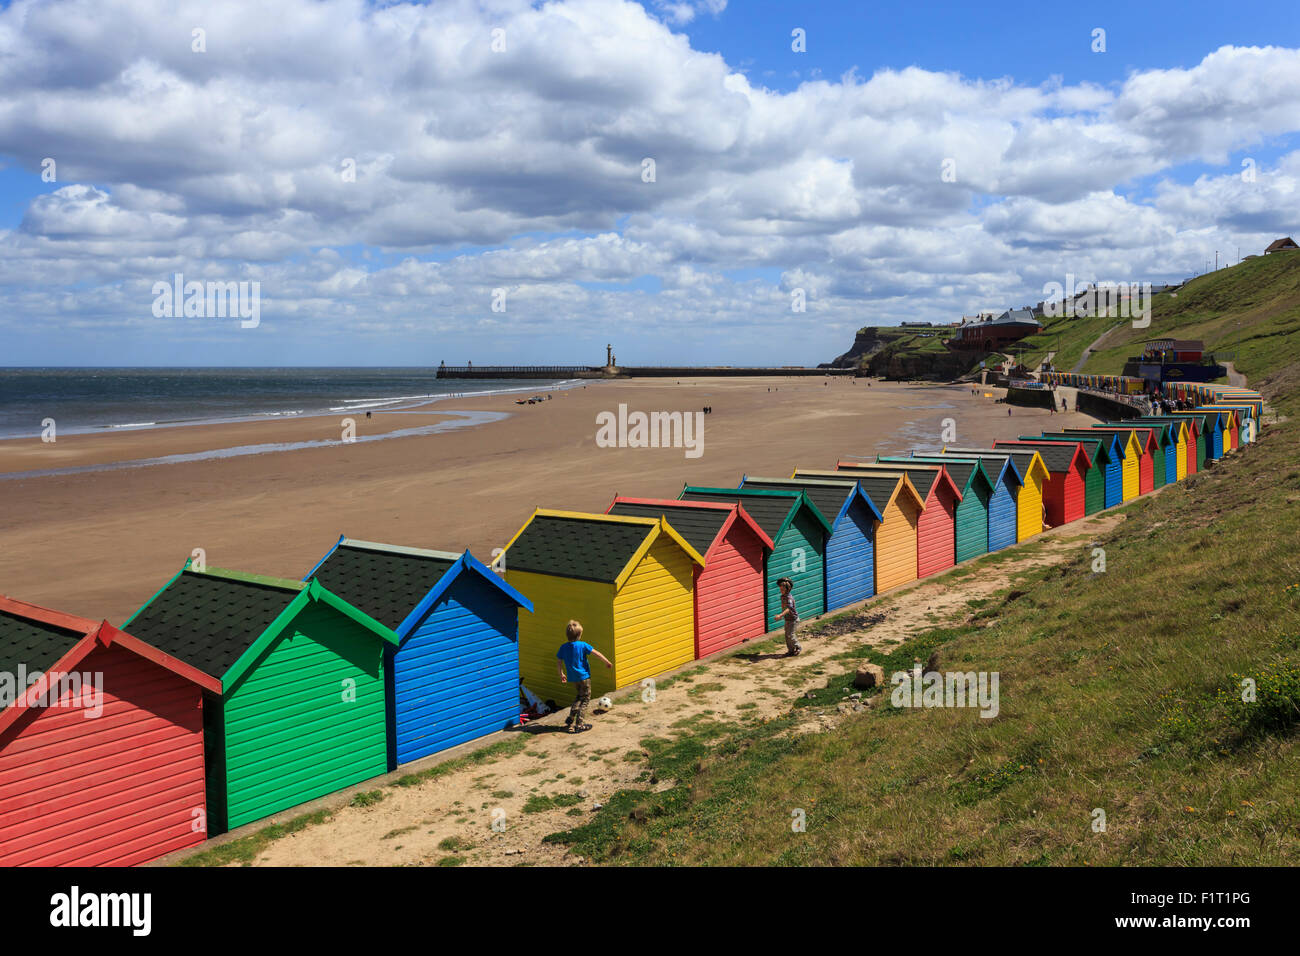 Children kick football near colourful beach huts above West Cliff Beach, Whitby, North Yorkshire, England, United - Stock Image